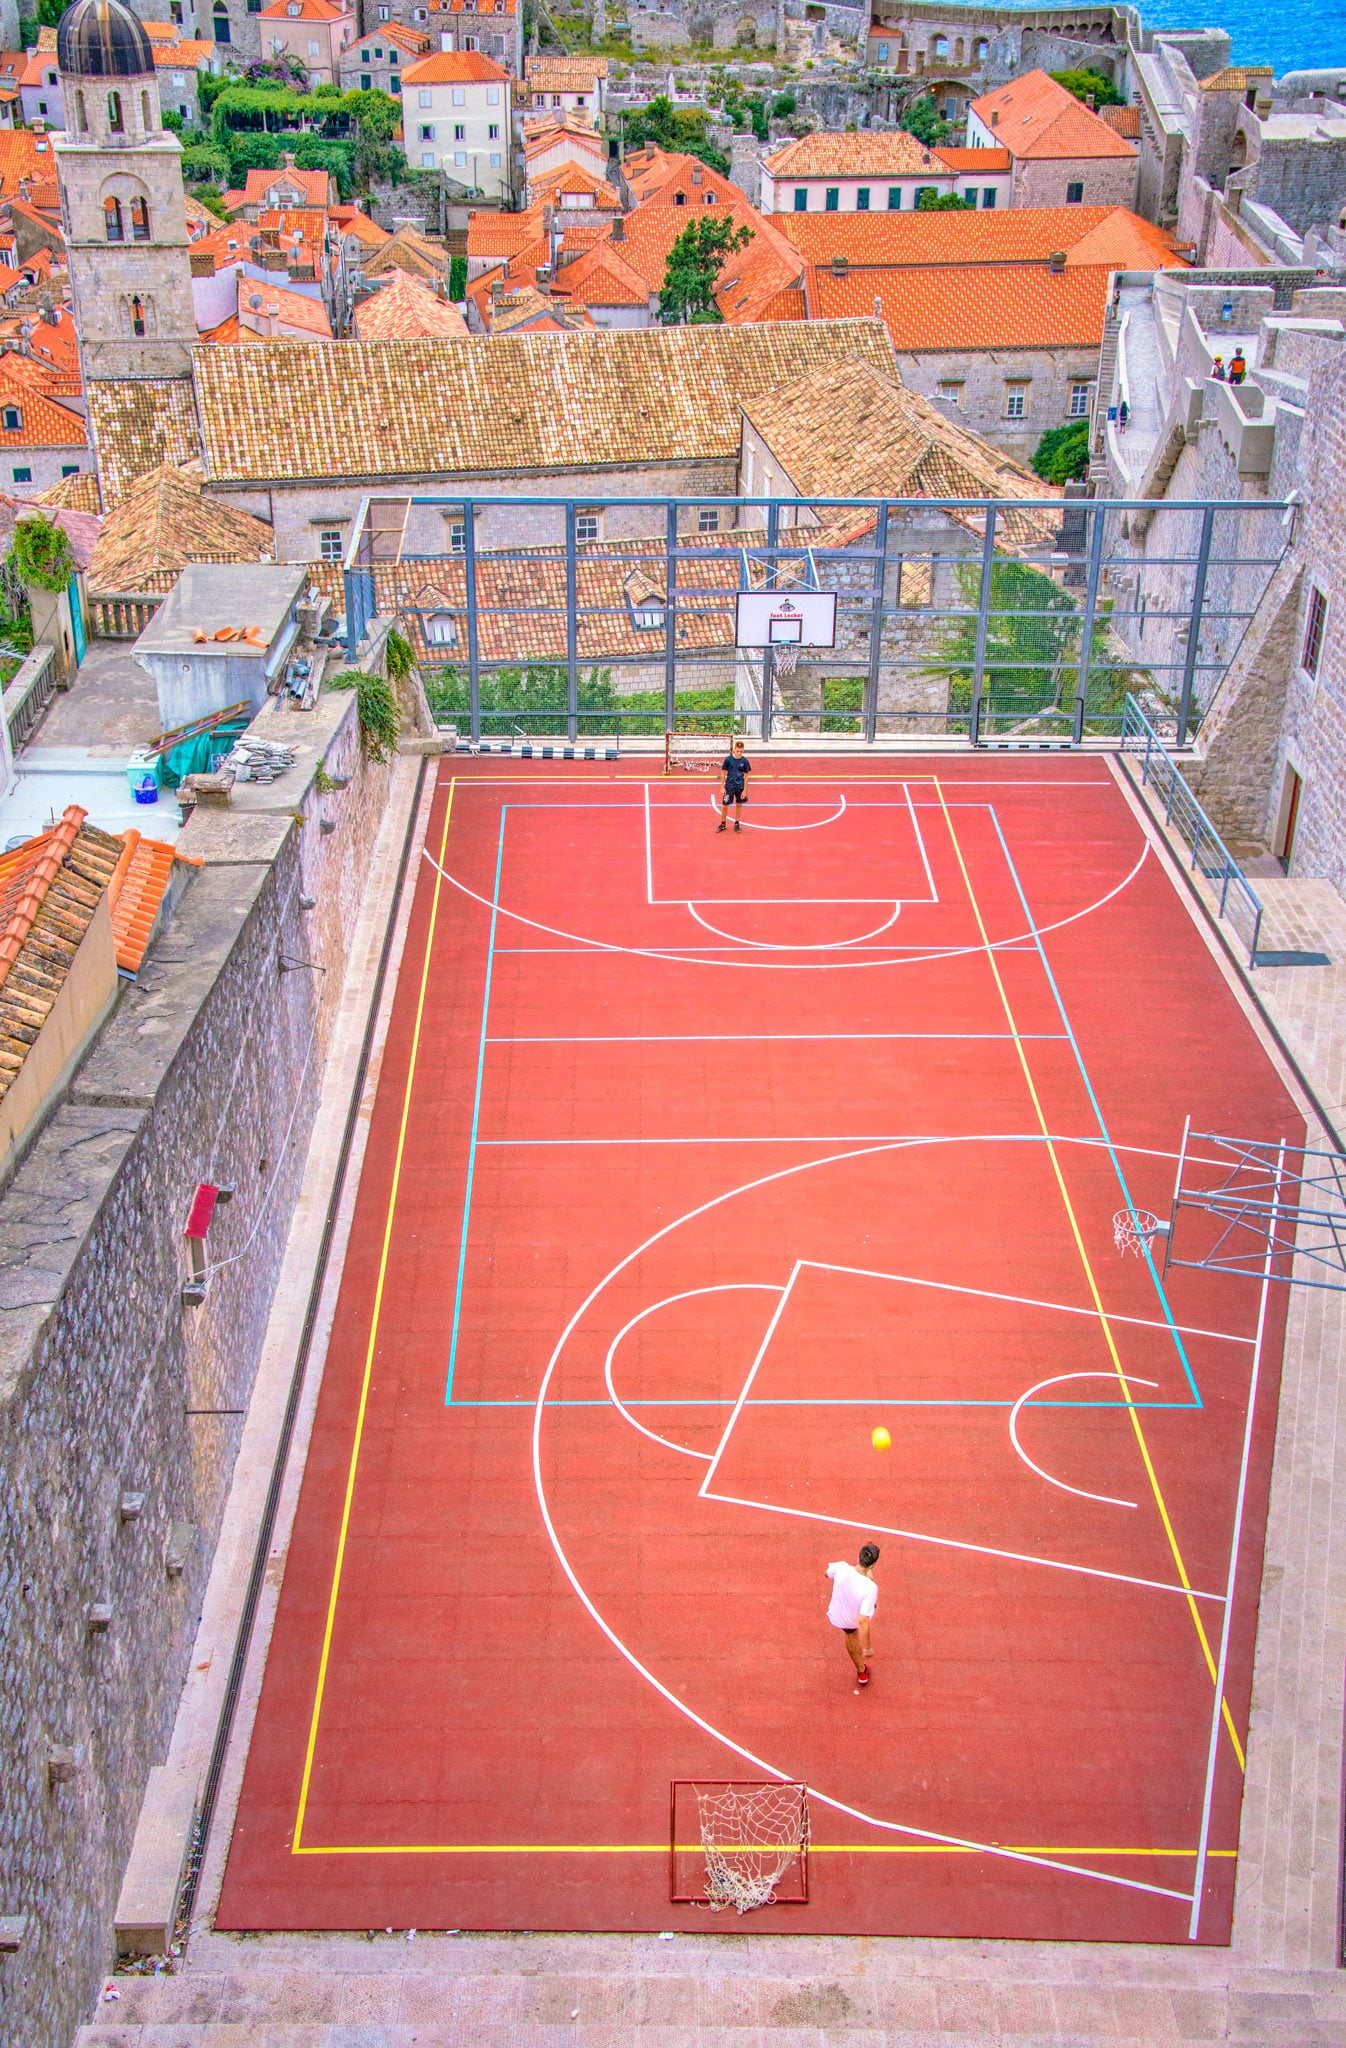 A view of a soccer/basketball court within Dubrovnik Old Town as seen from the Monceta Tower in the city wall.